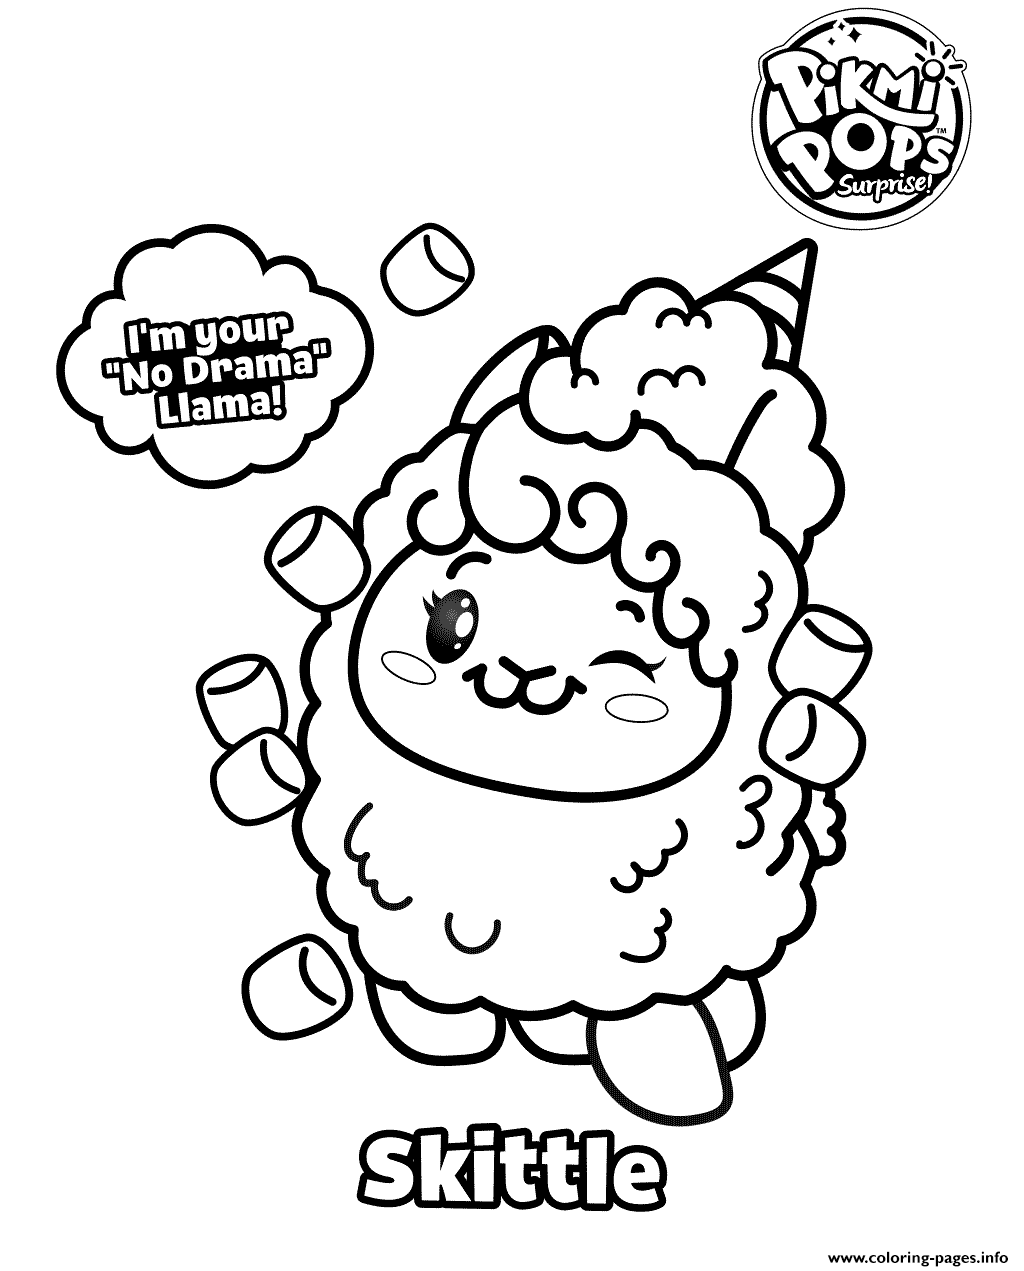 pikmi pops coloring pages Pikmi Pops Coloring For Kids Coloring Pages Printable pikmi pops coloring pages